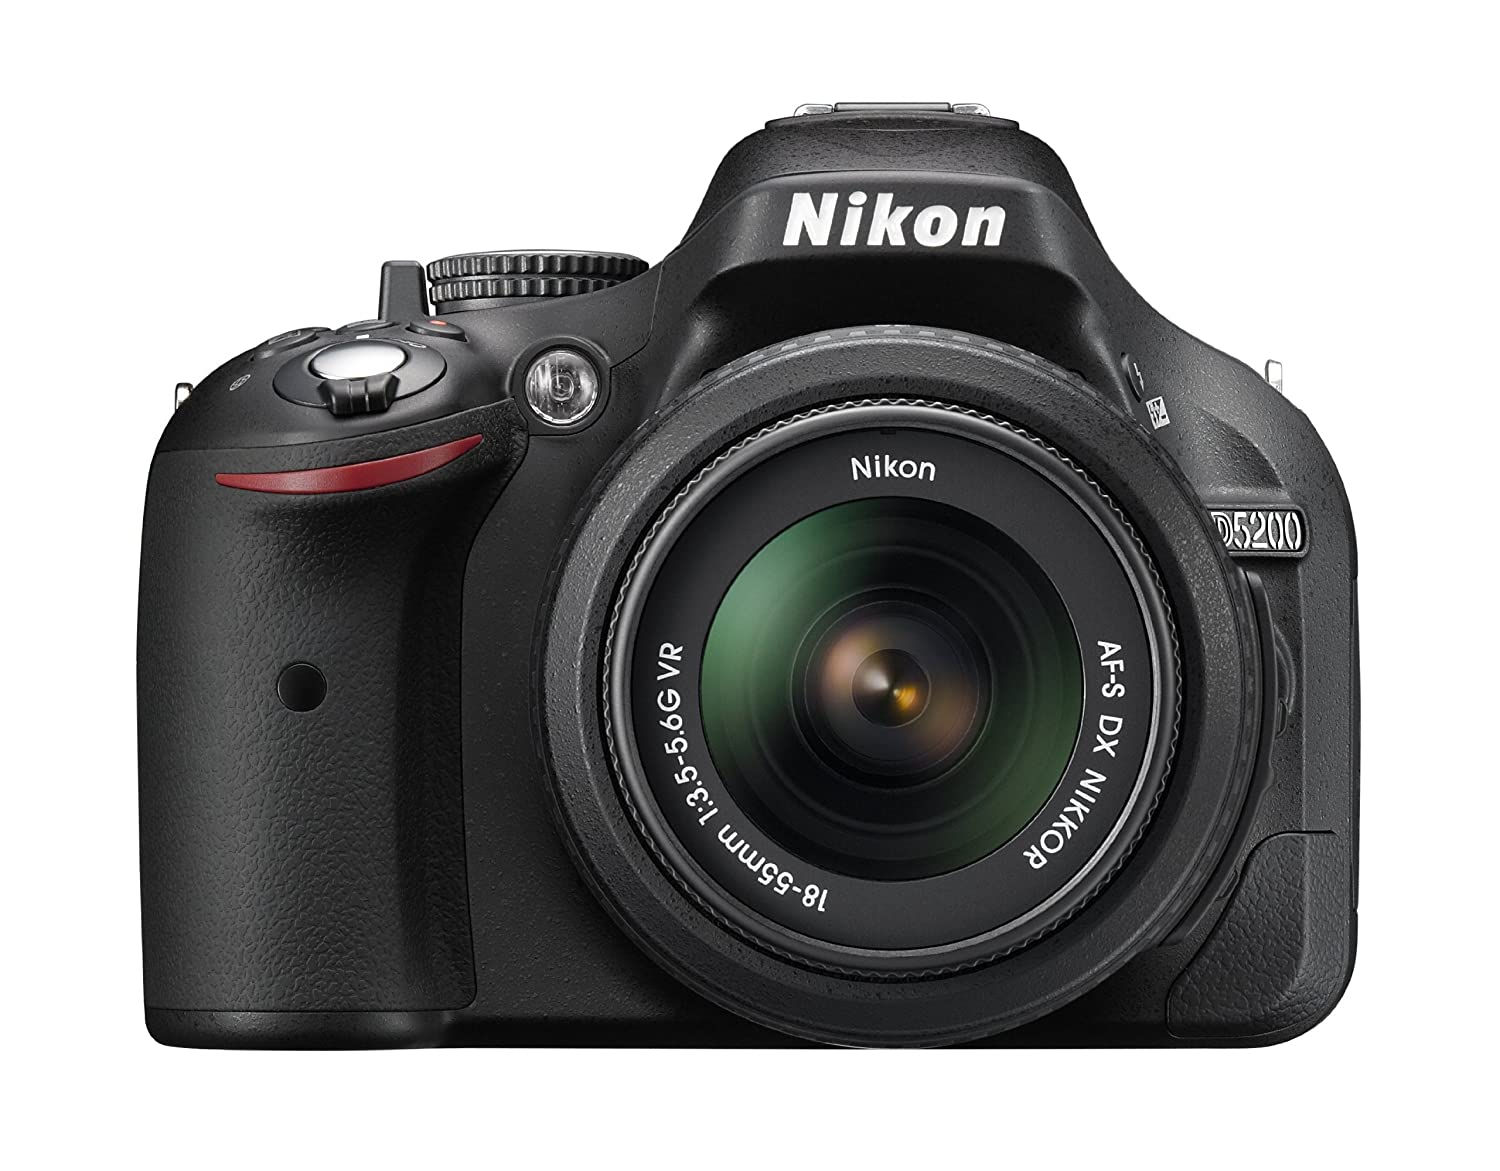 offer letter email format%0A Amazon com   Nikon D          MP CMOS Digital SLR with     mm f         AFS DX VR NIKKOR Zoom Lens  Black   Discontinued by Manufacturer     Digital Camera